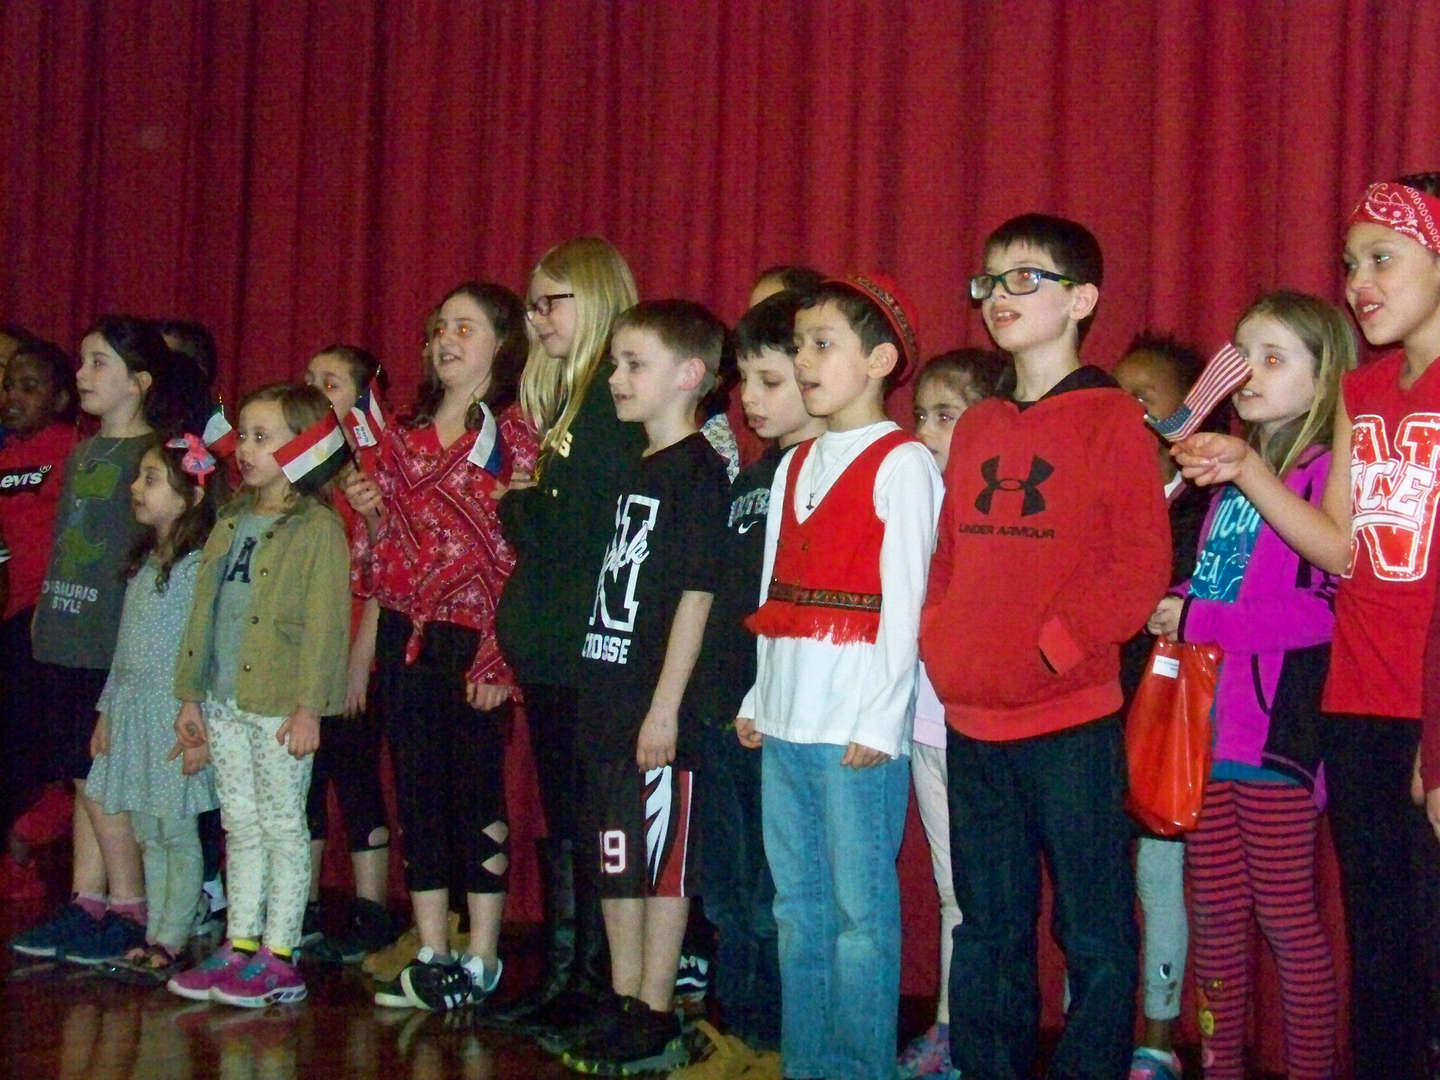 Students singing holding country flags